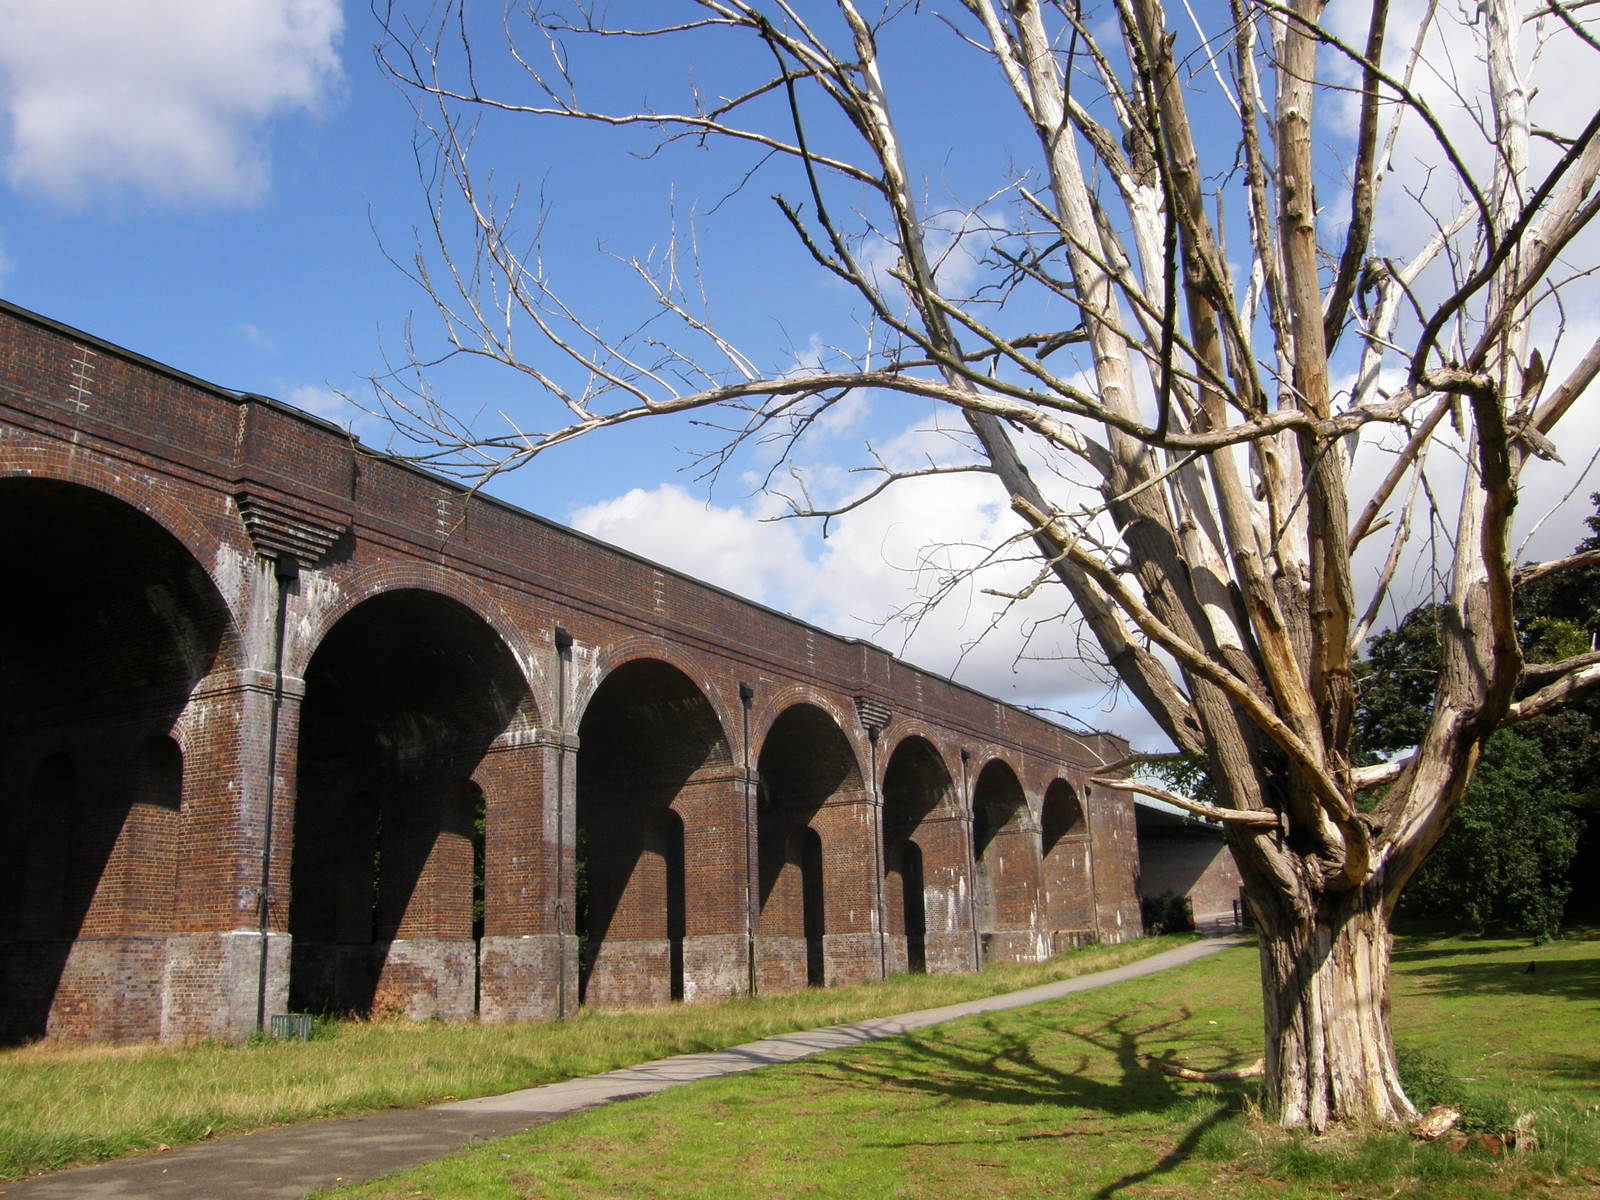 The viaduct in Arnos Park